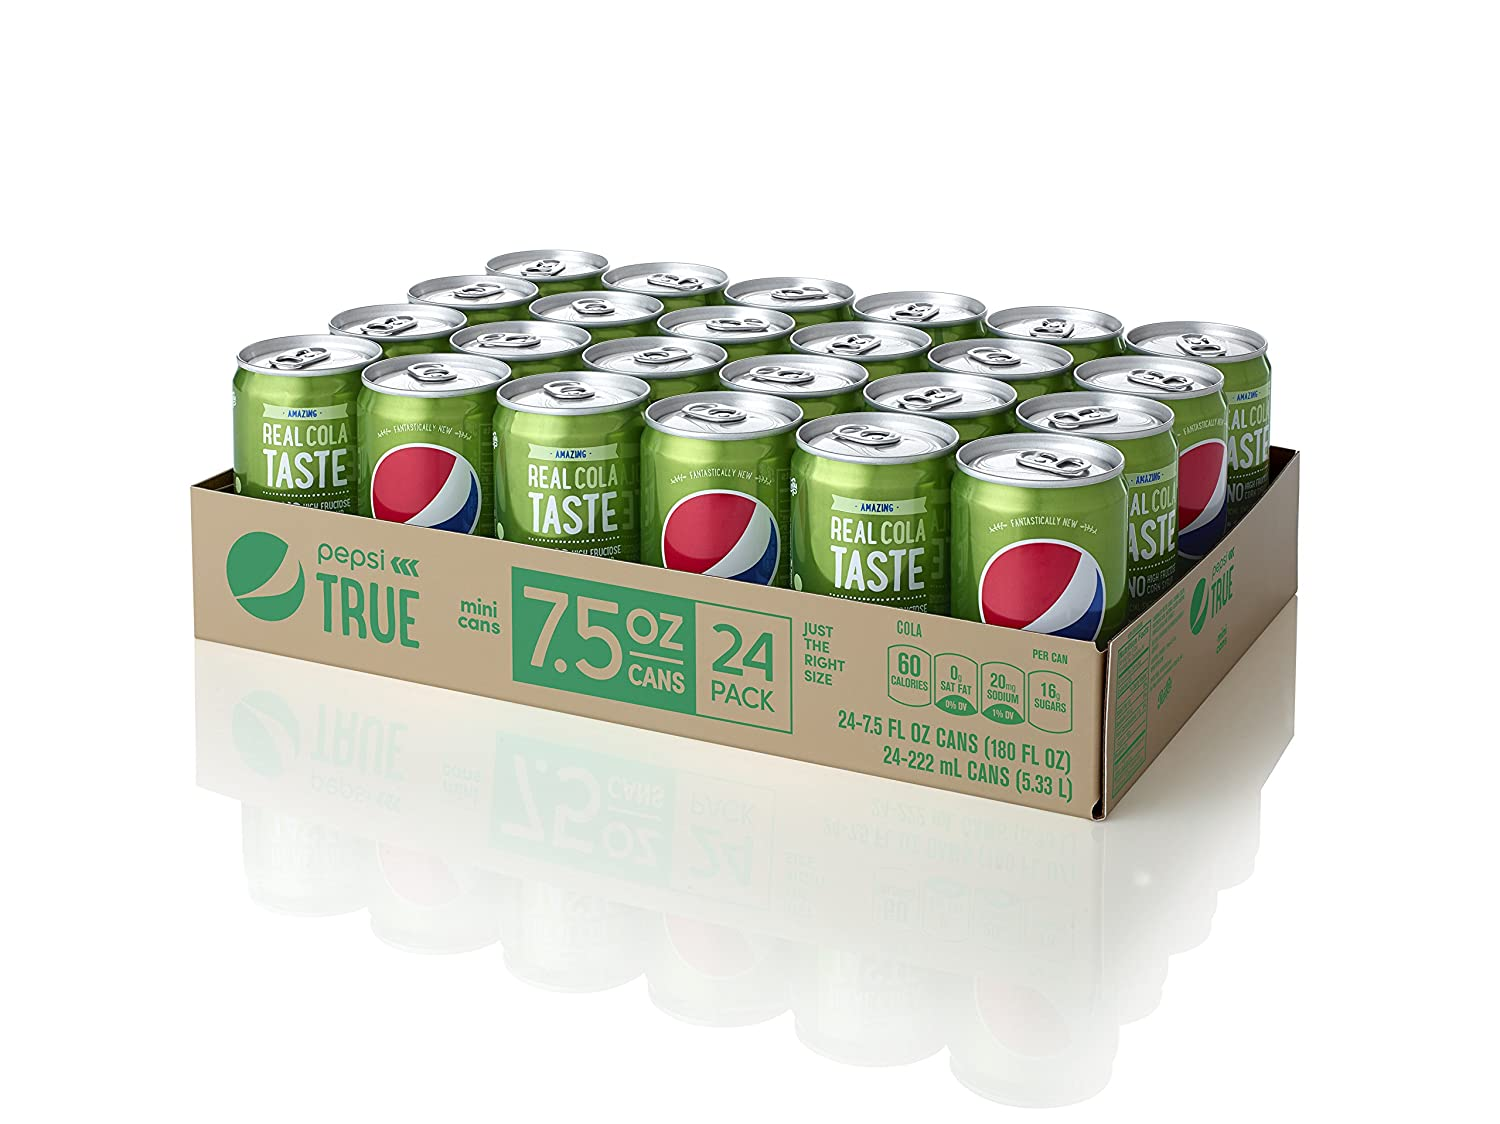 Pepsi True, sold exclusively online. Initially only through Amazon.com but now also available through Walmart.com. Image courtesy of Amazon.com